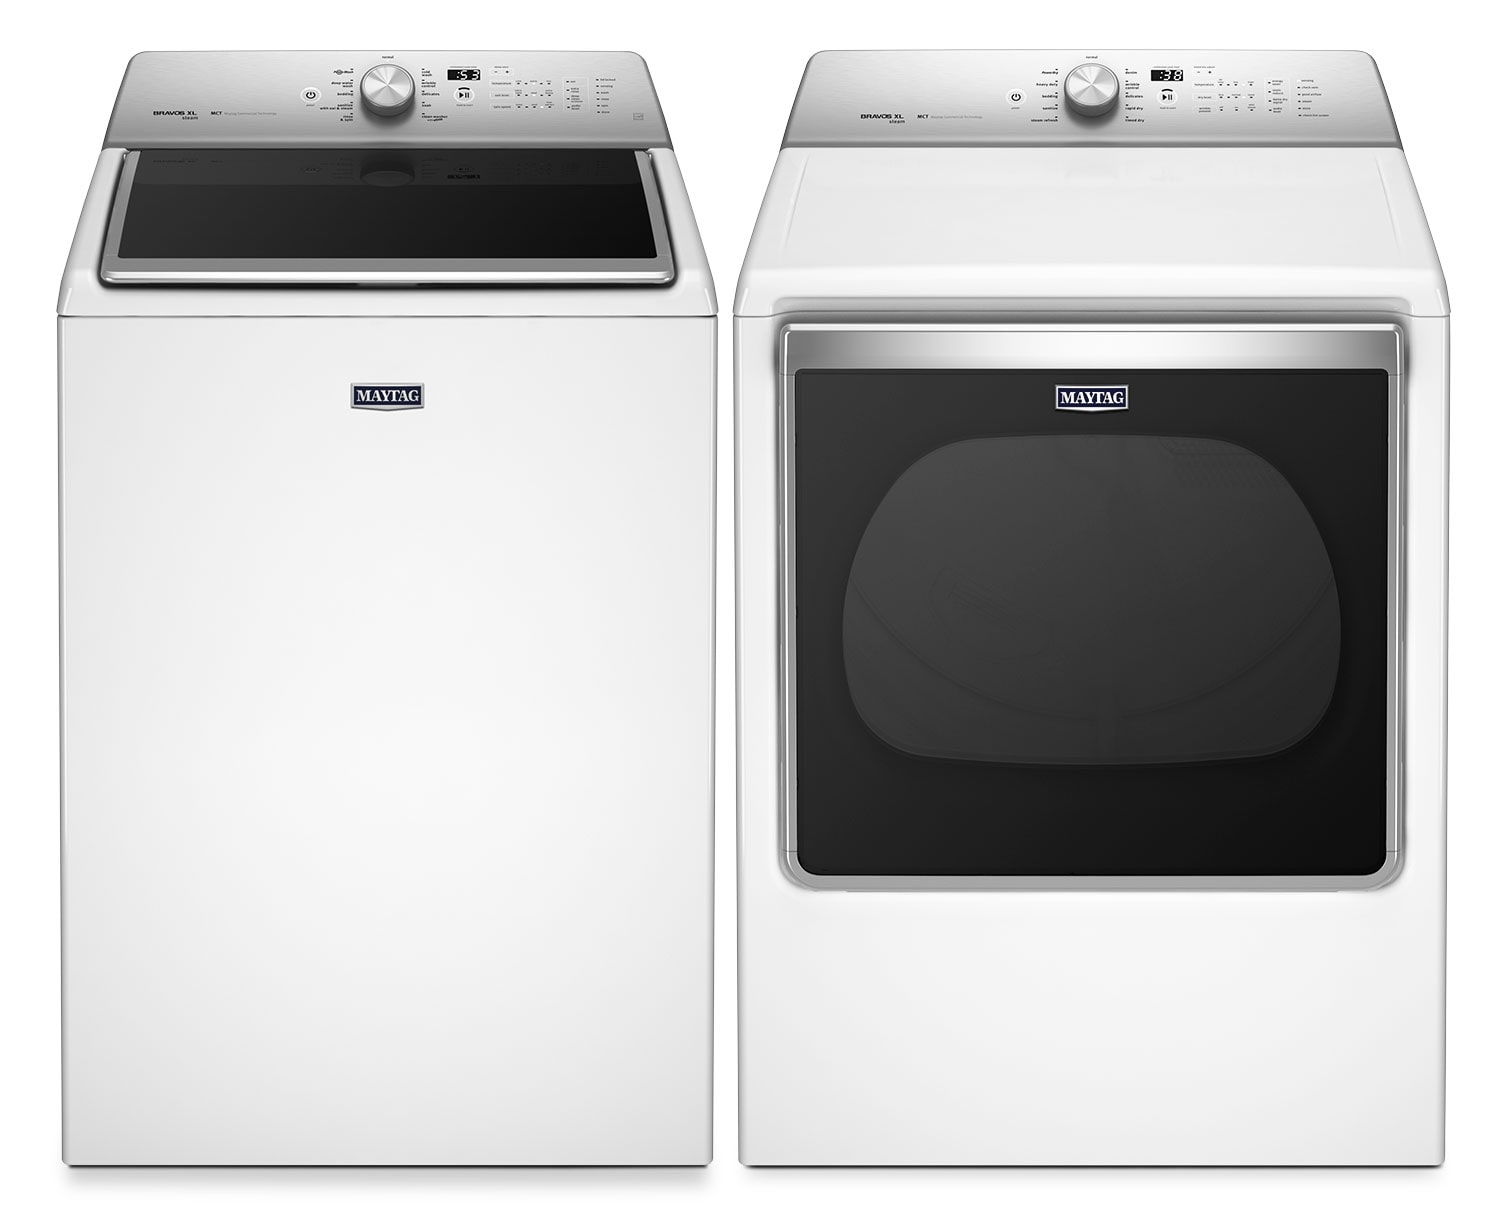 Maytag 6.1 Cu. Ft. Top-Load Steam Washer and 8.8 Cu. Ft. Electric Steam Dryer – White